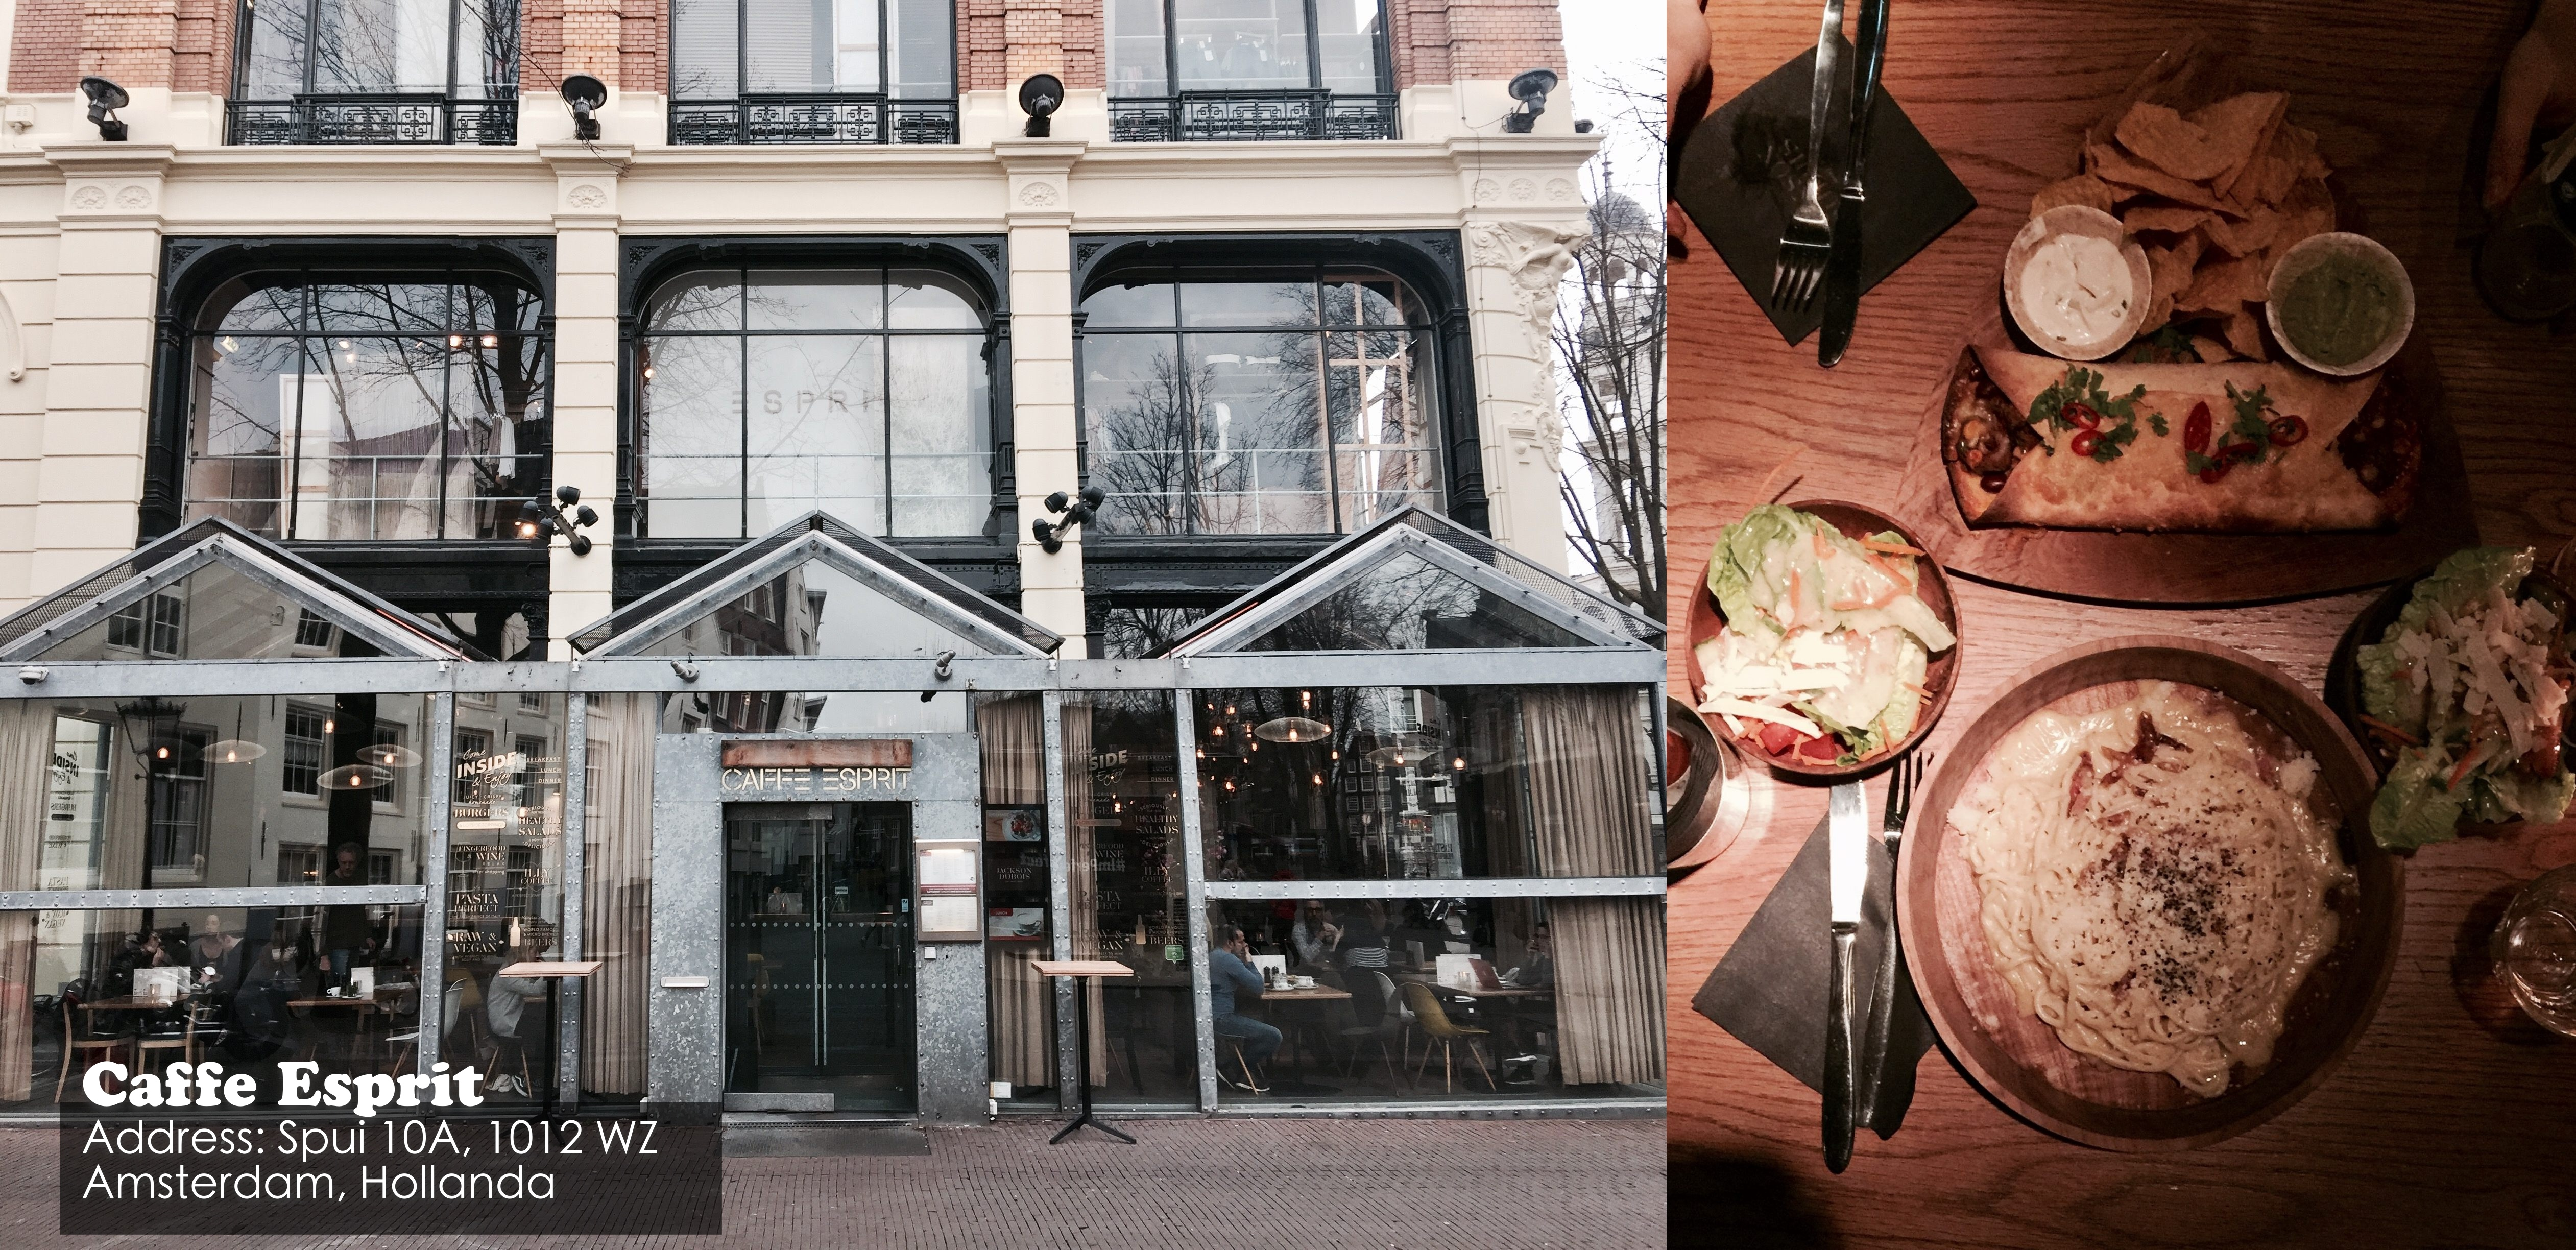 Cafe Esprit Amsterdam - Amsterdam Cafes 1